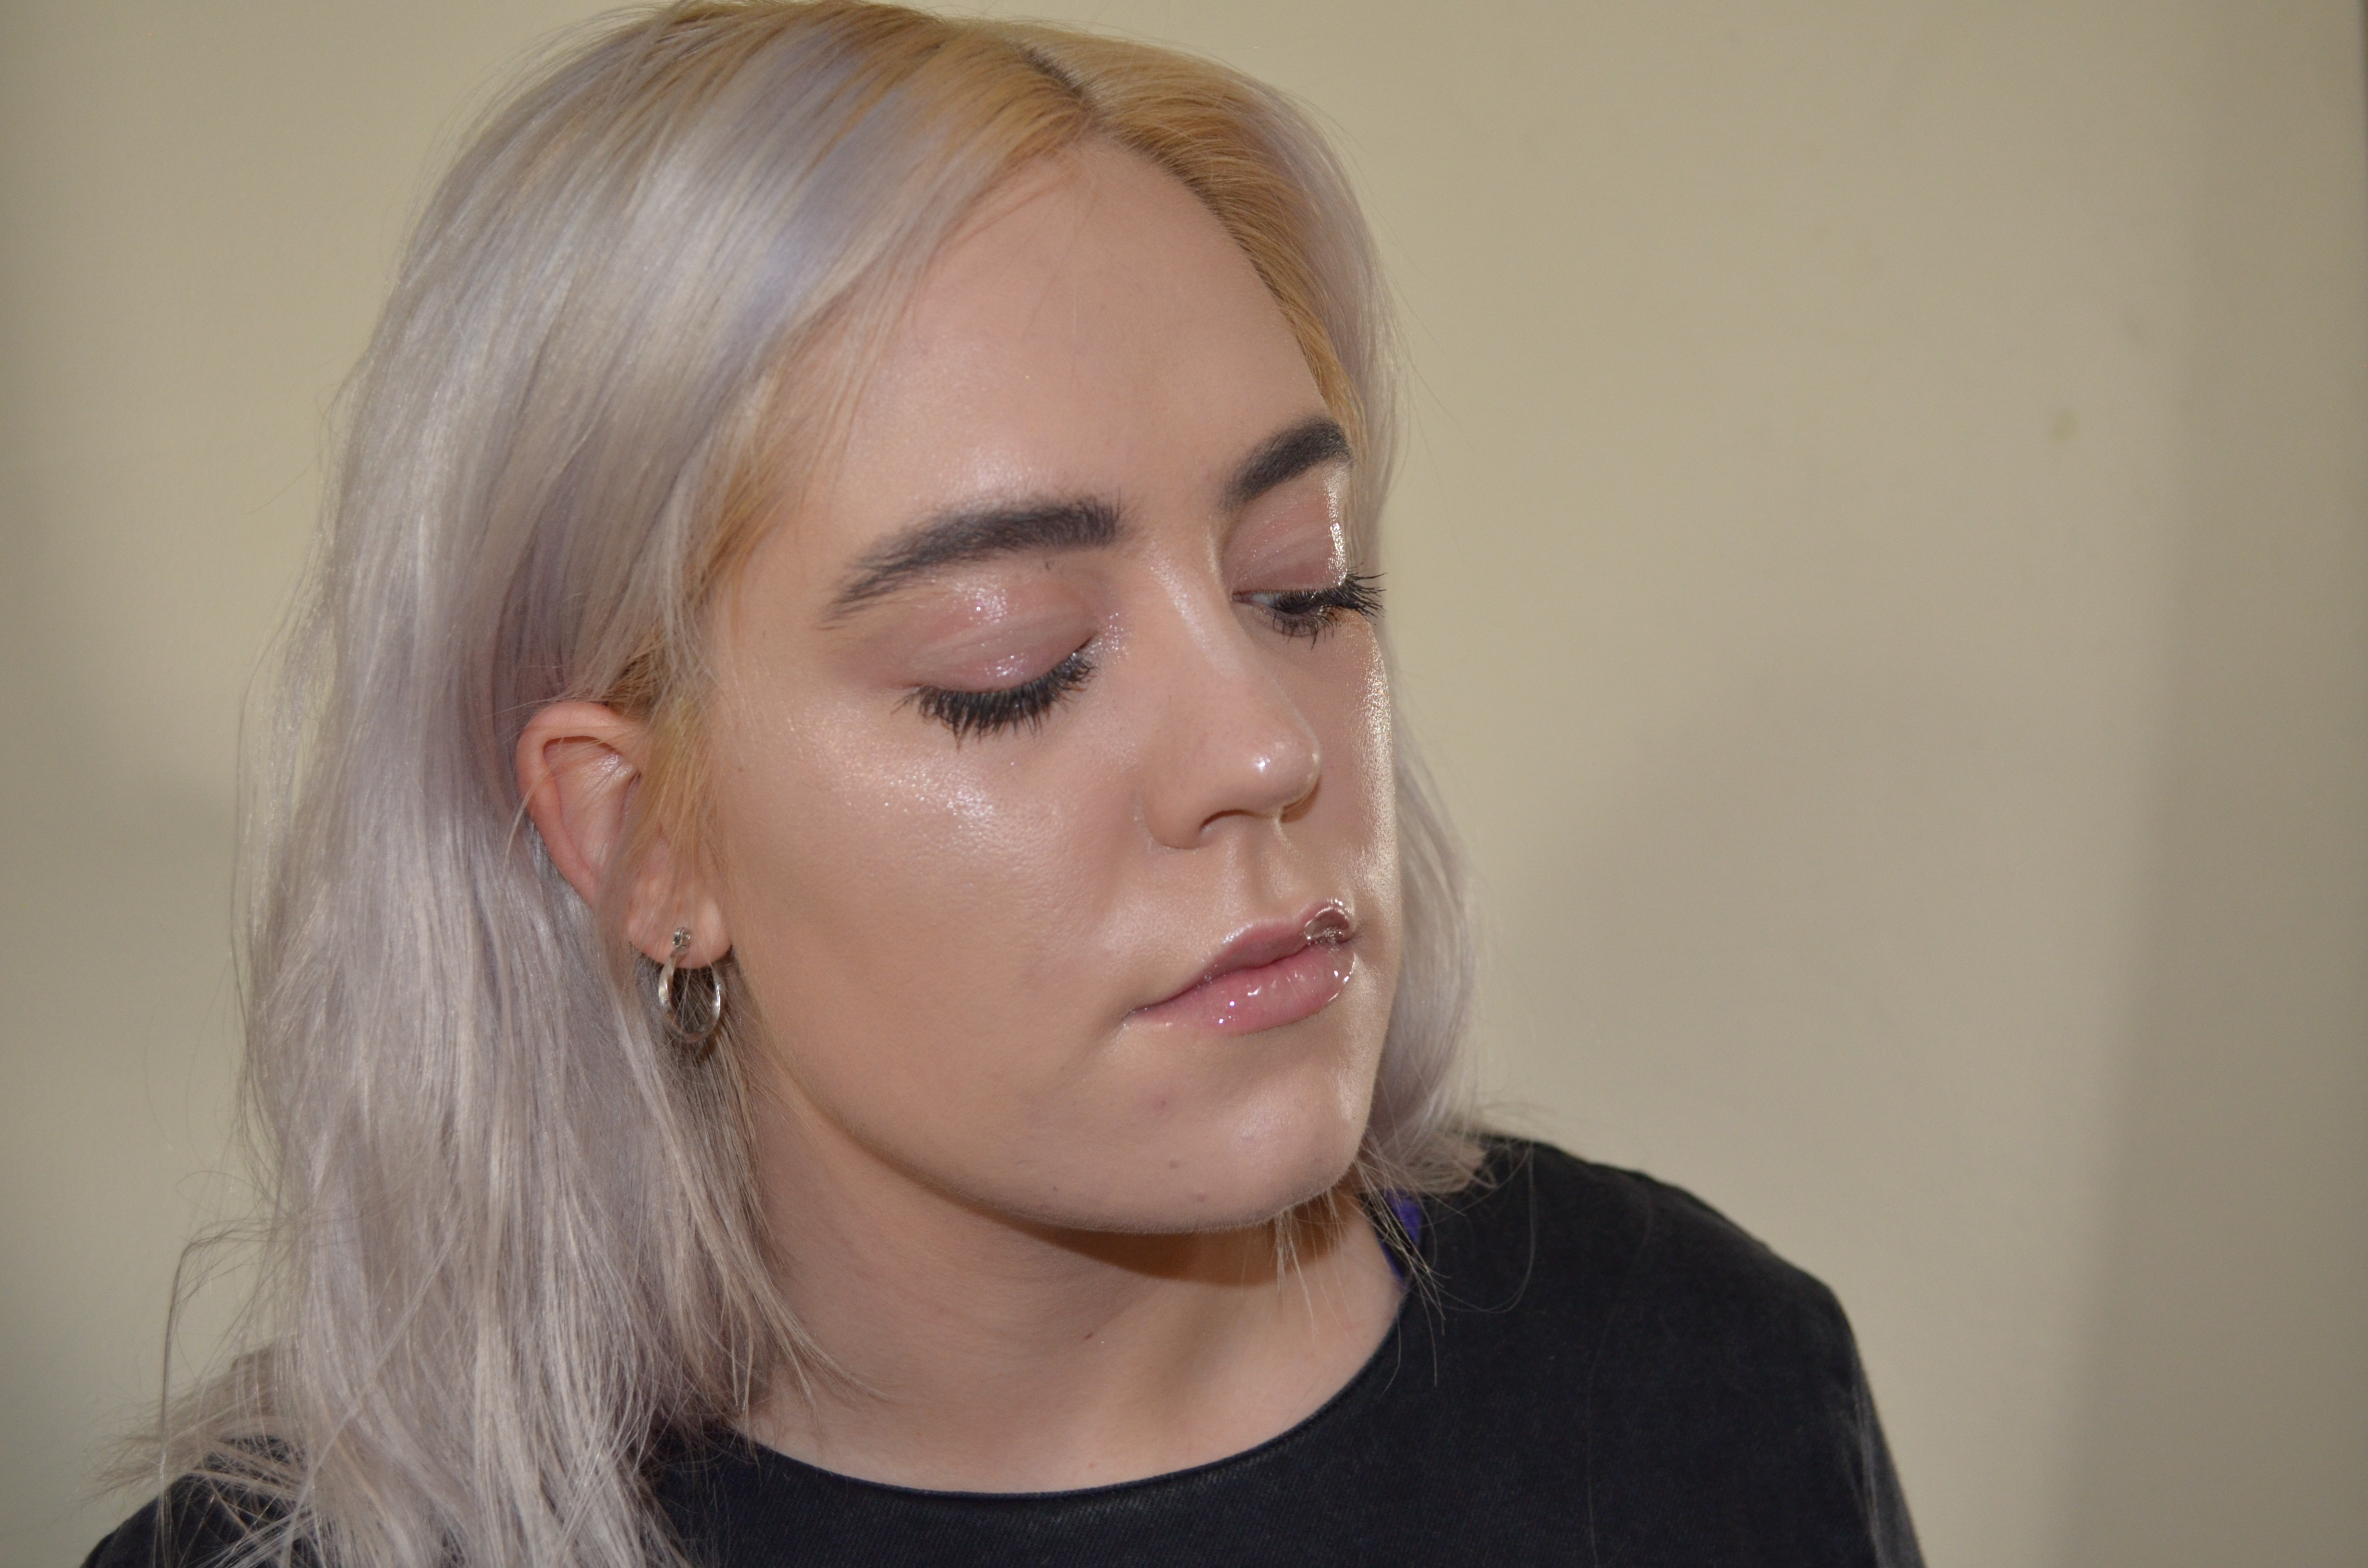 Glossy Face Trend